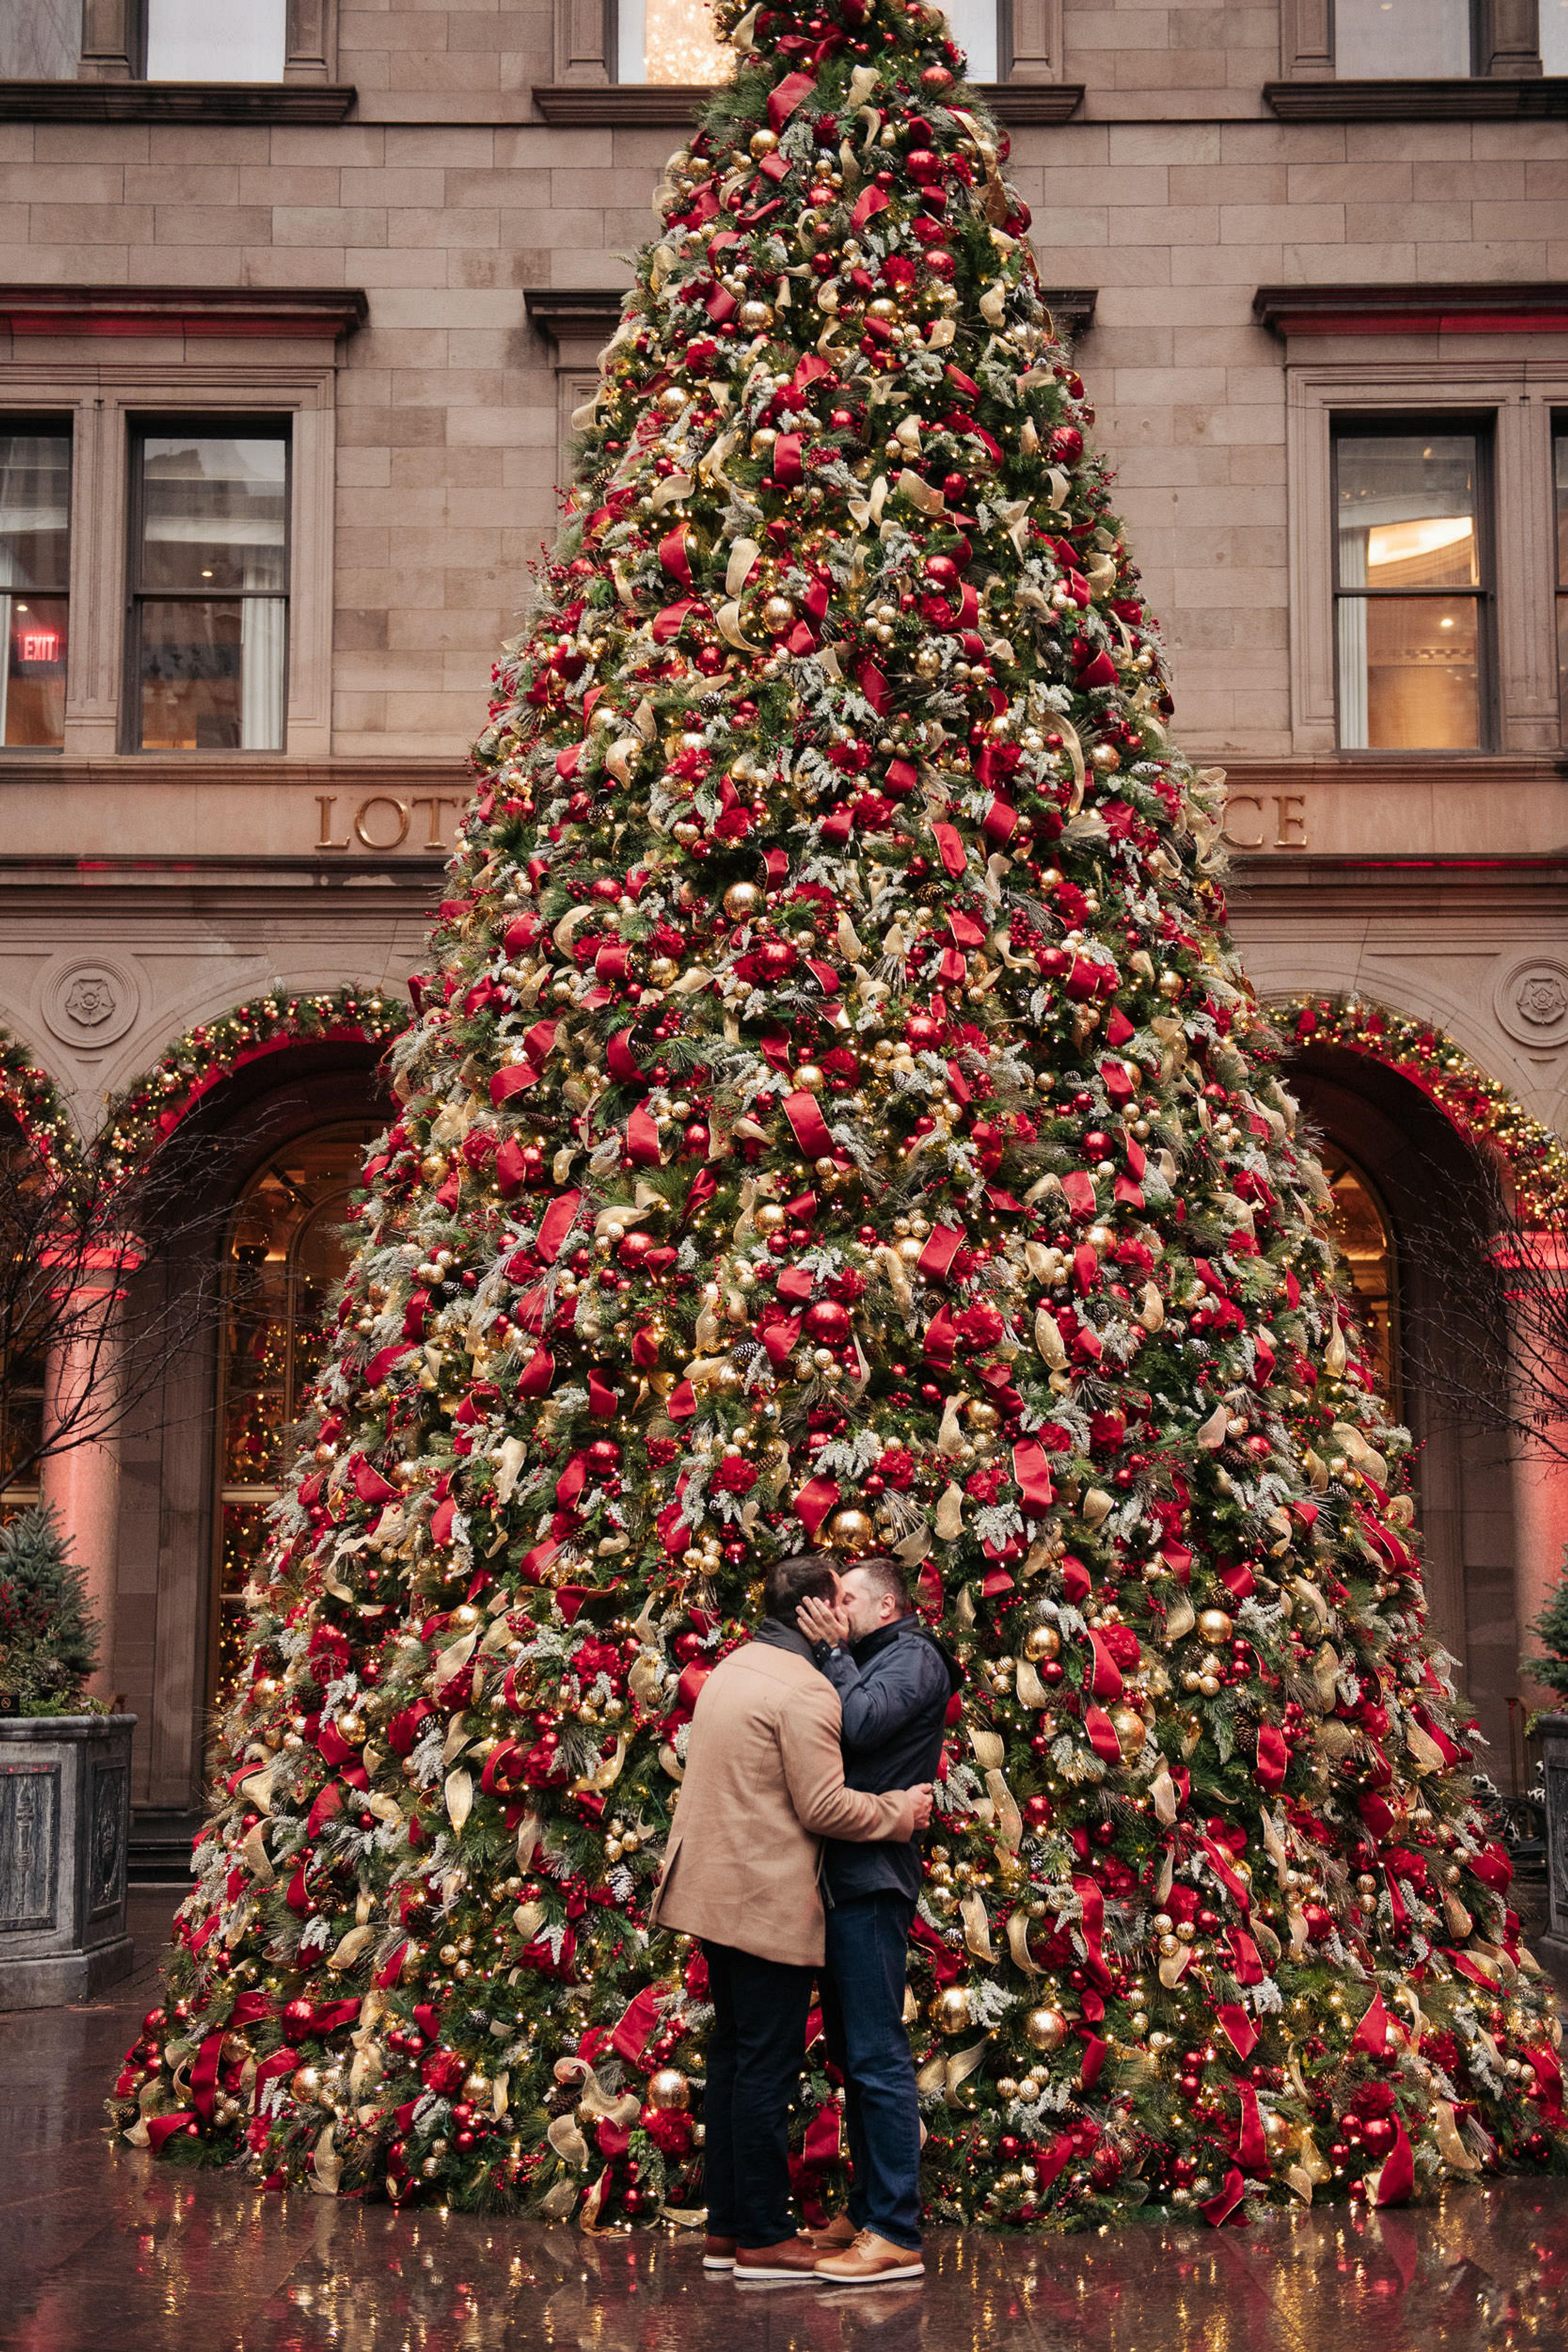 Romantic Christmas Proposal In Lotte Hotel In New York New York In 2020 Romantic Christmas Christmas Proposal Lgbtq Wedding